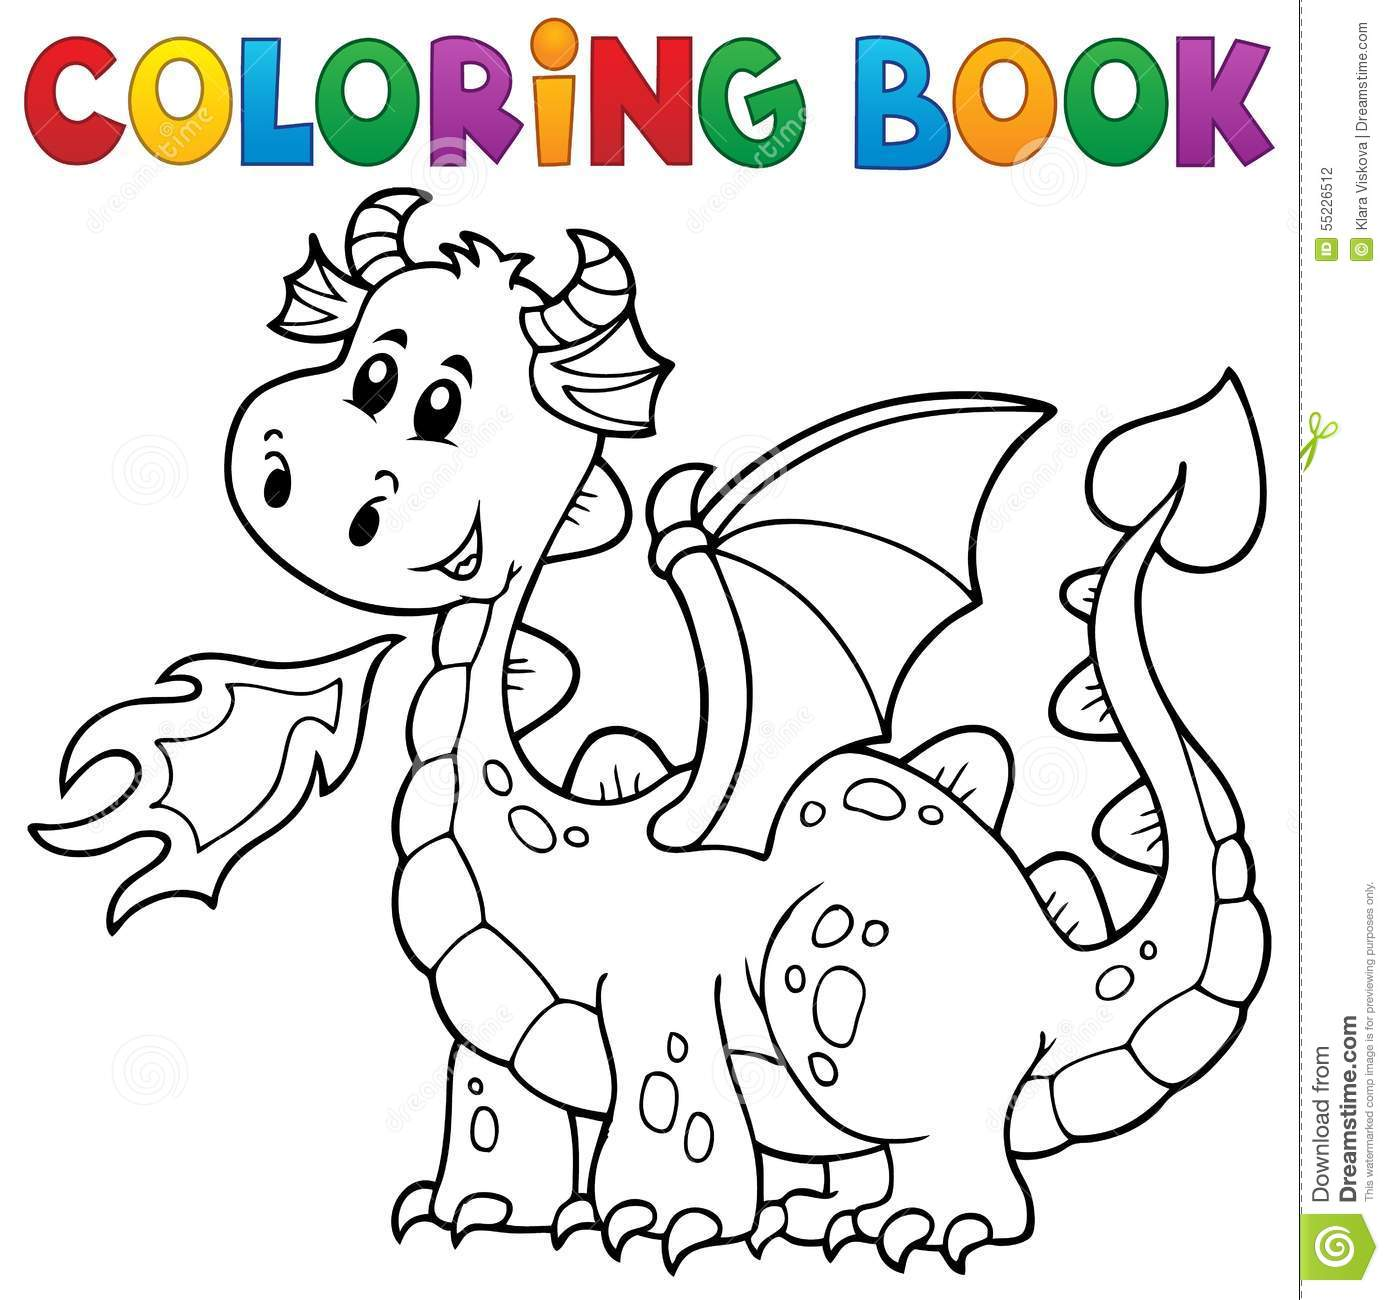 Coloring Book With Happy Dragon Royalty Free Vector